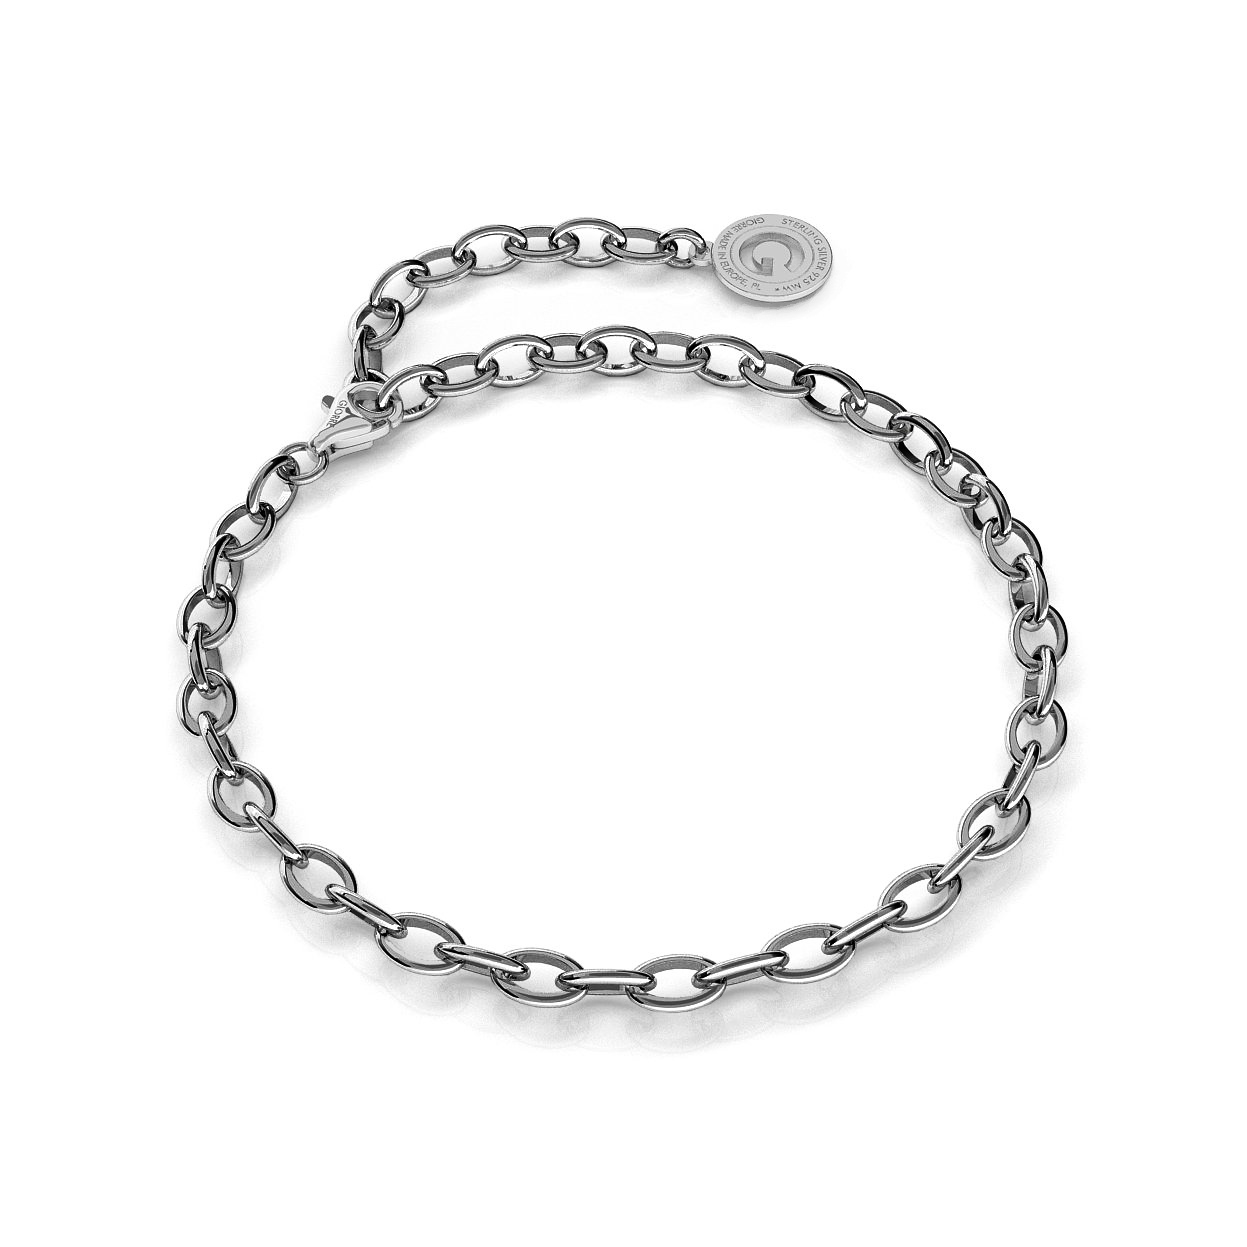 STERLING SILVER BRACELET 16-24 CM BLACK RHODIUM, LIGHT RHODIUM CLASP, LINK 6X4 MM